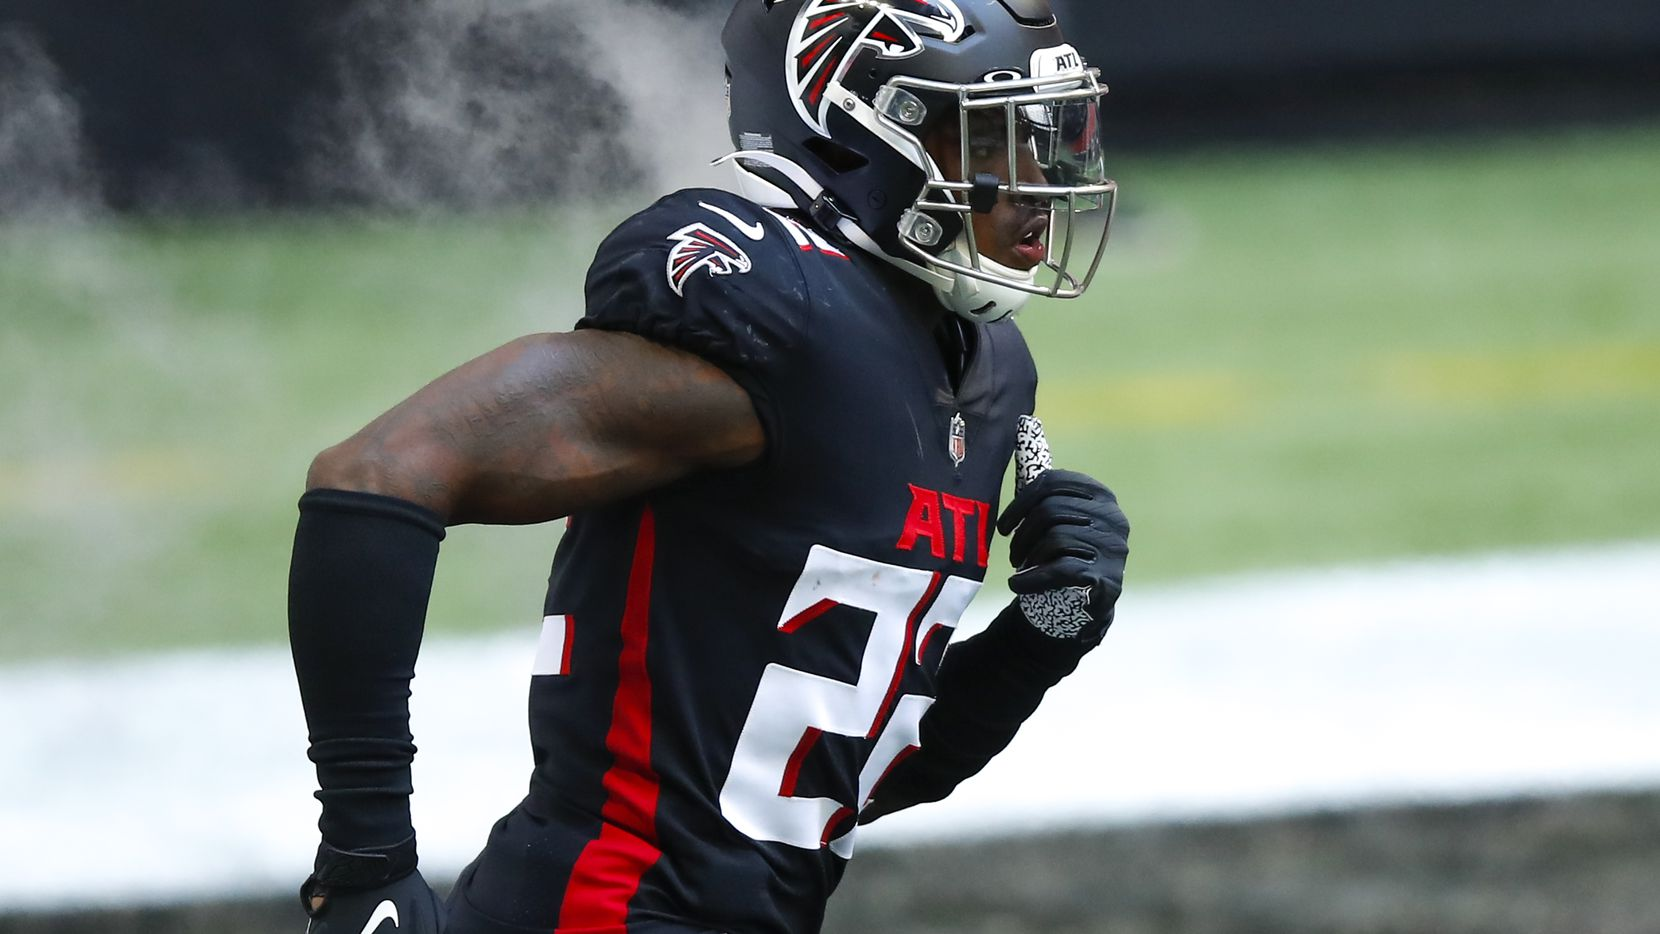 Keanu Neal #22 of the Atlanta Falcons is introduced prior to an NFL game against the Chicago Bears at Mercedes-Benz Stadium on September 27, 2020 in Atlanta, Georgia.